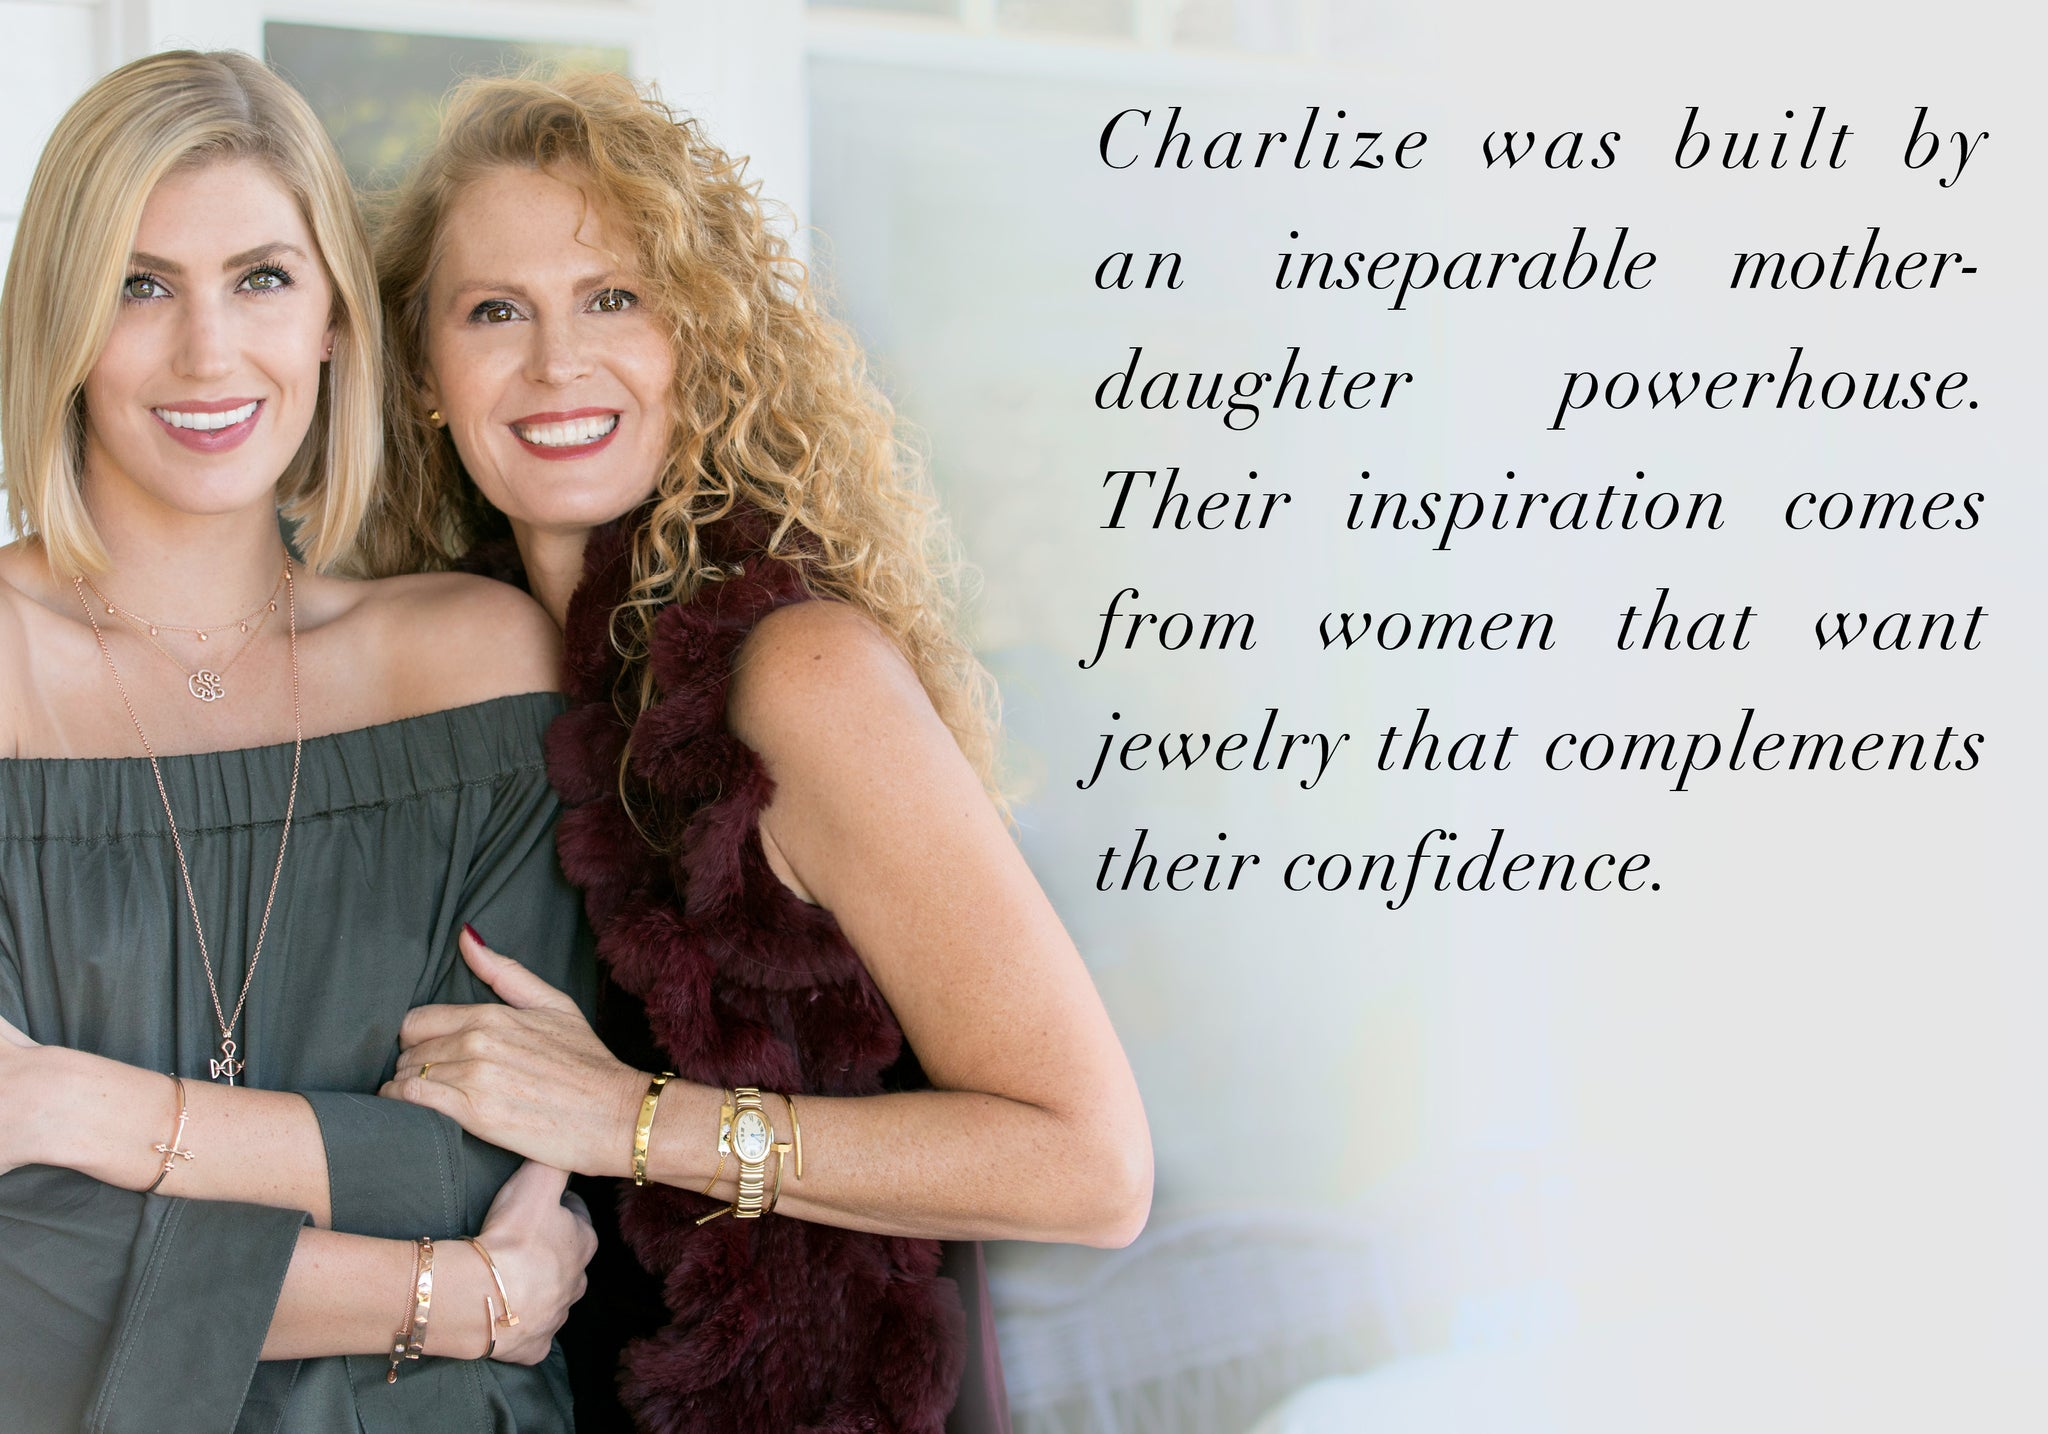 Charlize was built by an inseparable mother- daughter powerhouse. Their inspiration comes from women that want jewelry that complements their confidence.